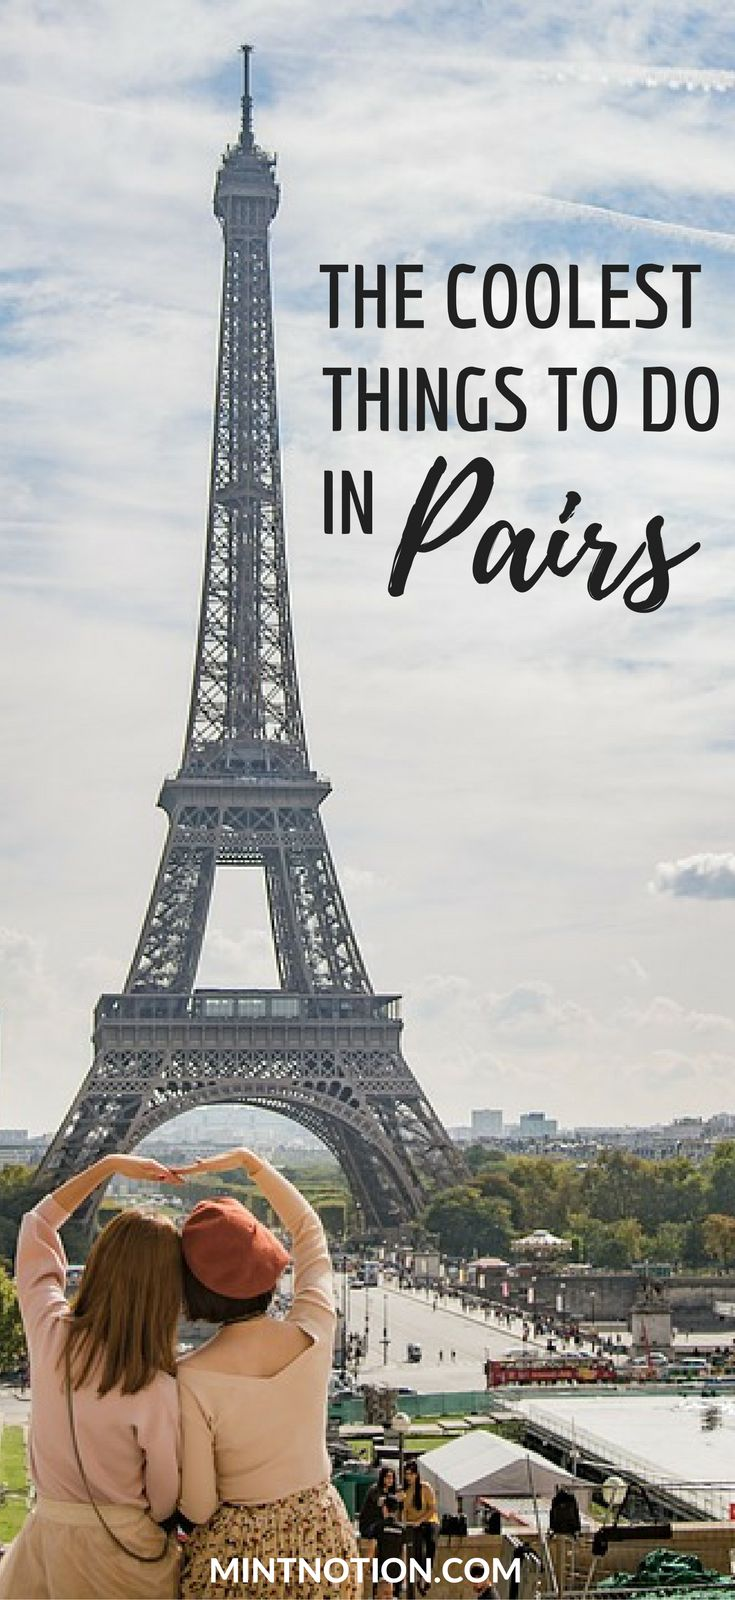 Visiting Paris for the first time. Avoid making these 12 silly tourist mistakes.  This list is full of great tips to save money and see the top attractions in Paris on a budget with The Paris Pass. #paristrip